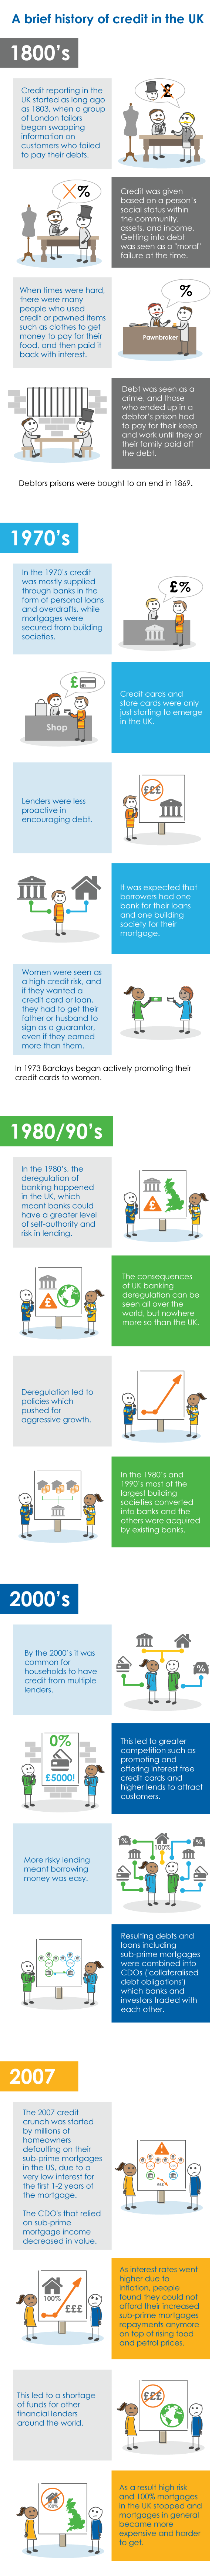 credit-history-in-the-uk-infographic